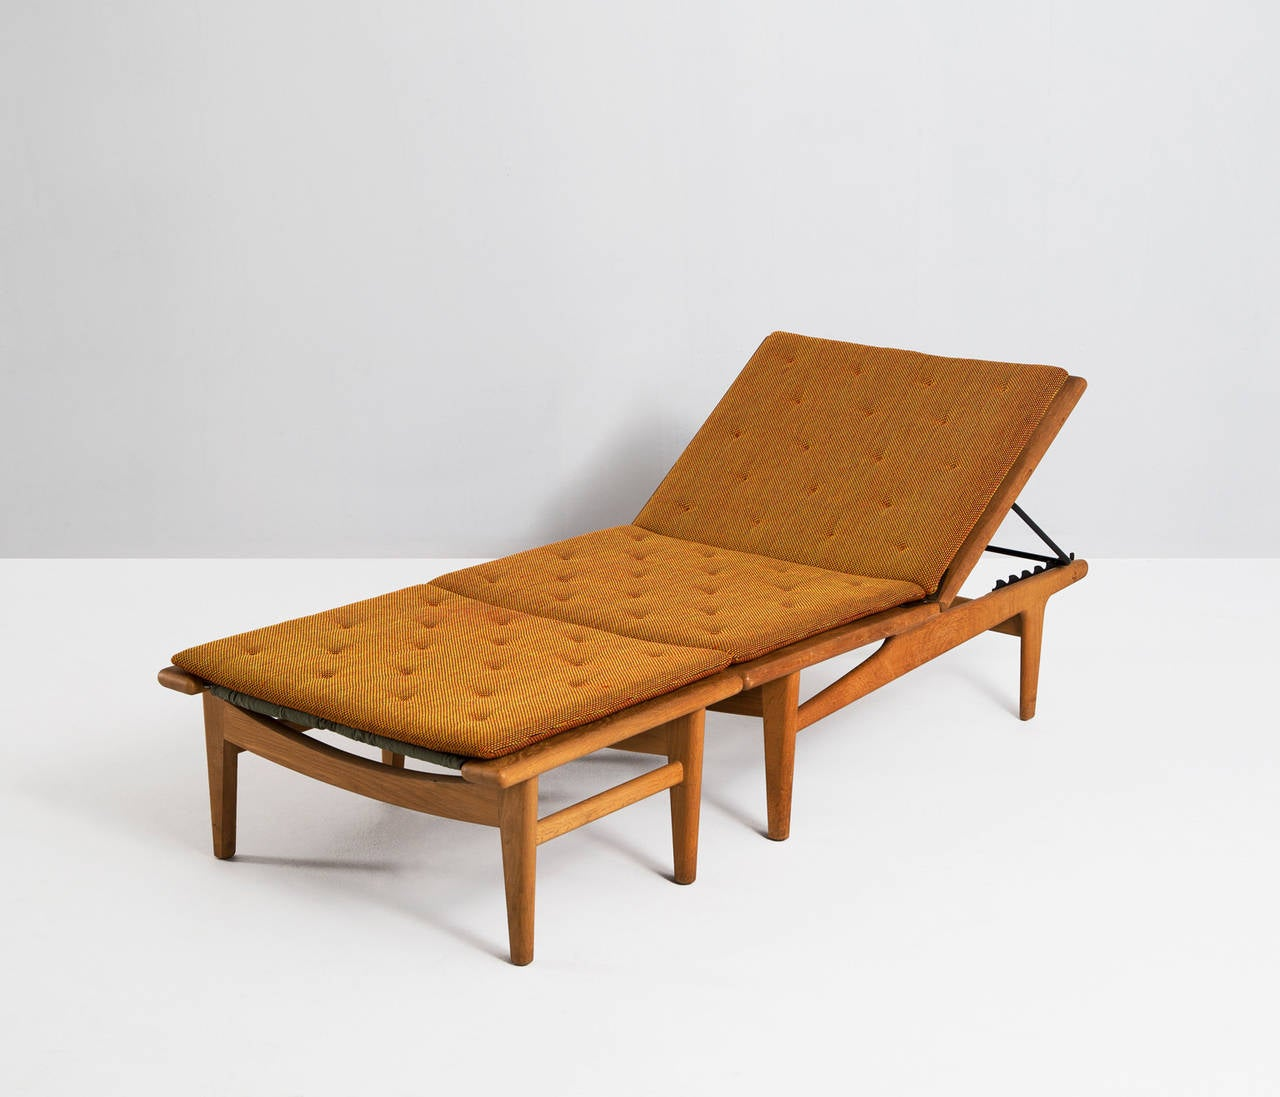 solid oak hans j wegner chaise longue for getama at 1stdibs. Black Bedroom Furniture Sets. Home Design Ideas